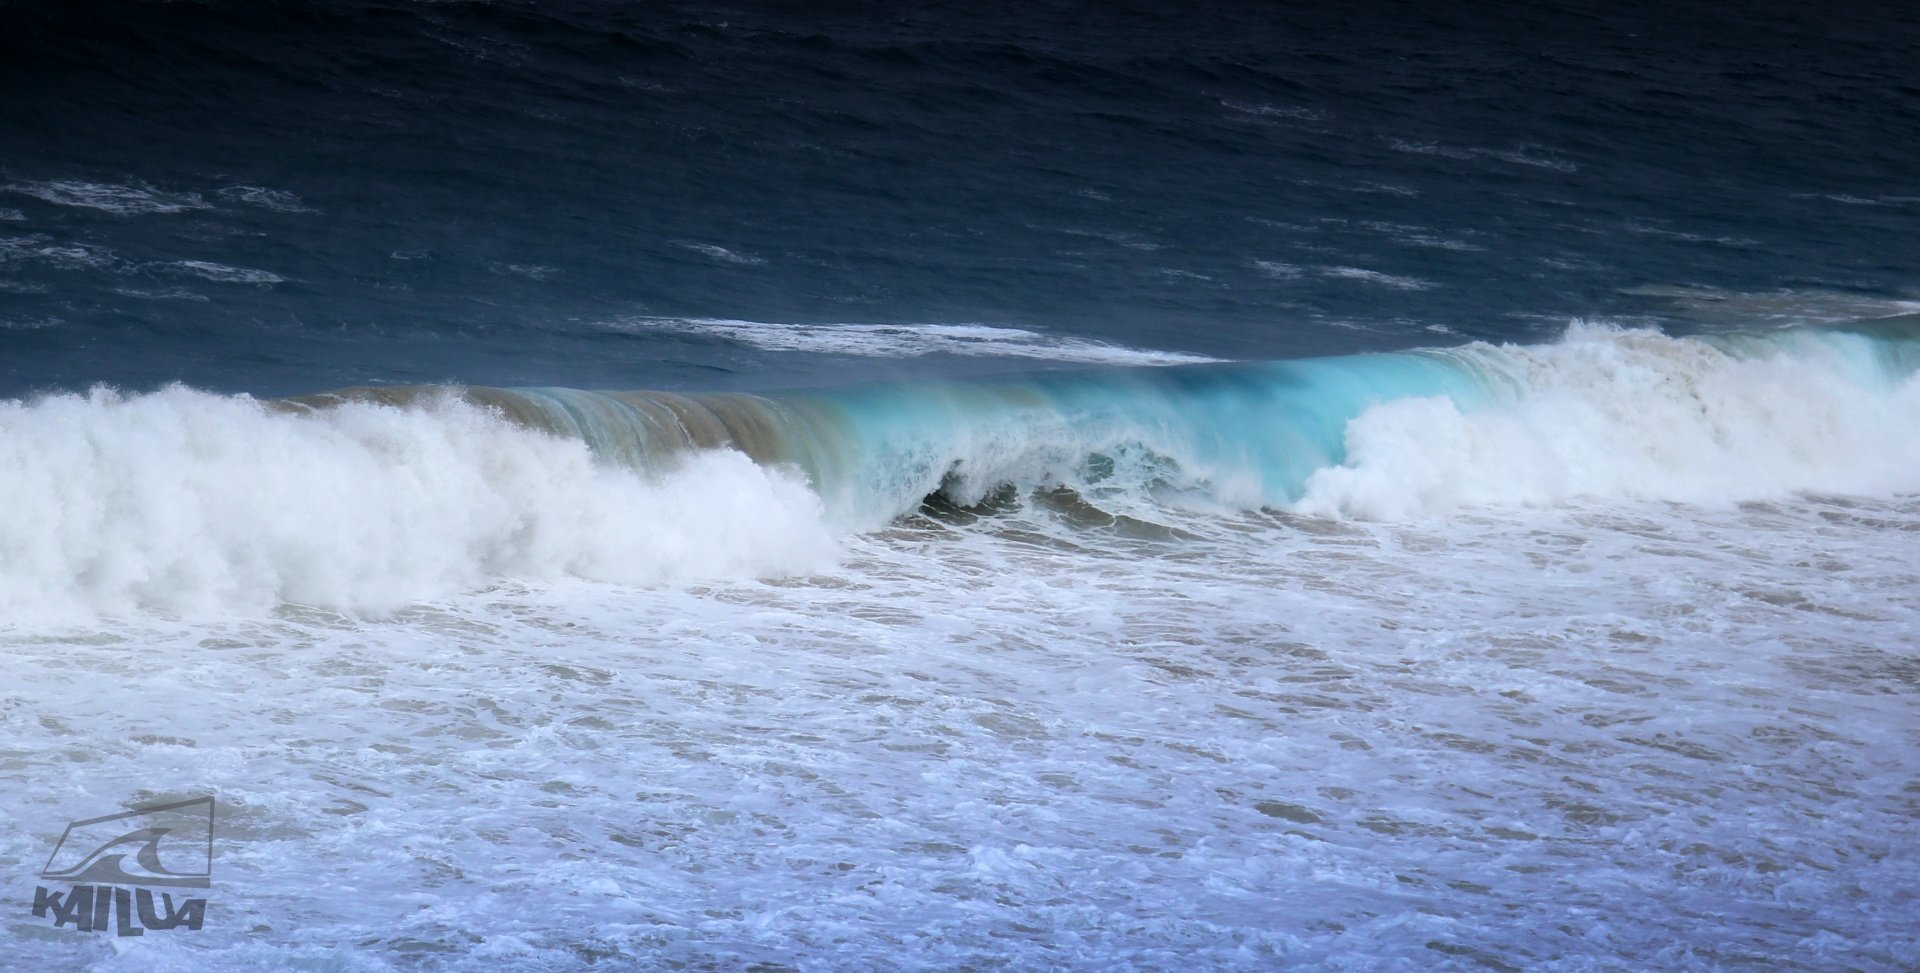 Kailua Surf School's photo of Playa de la Pared